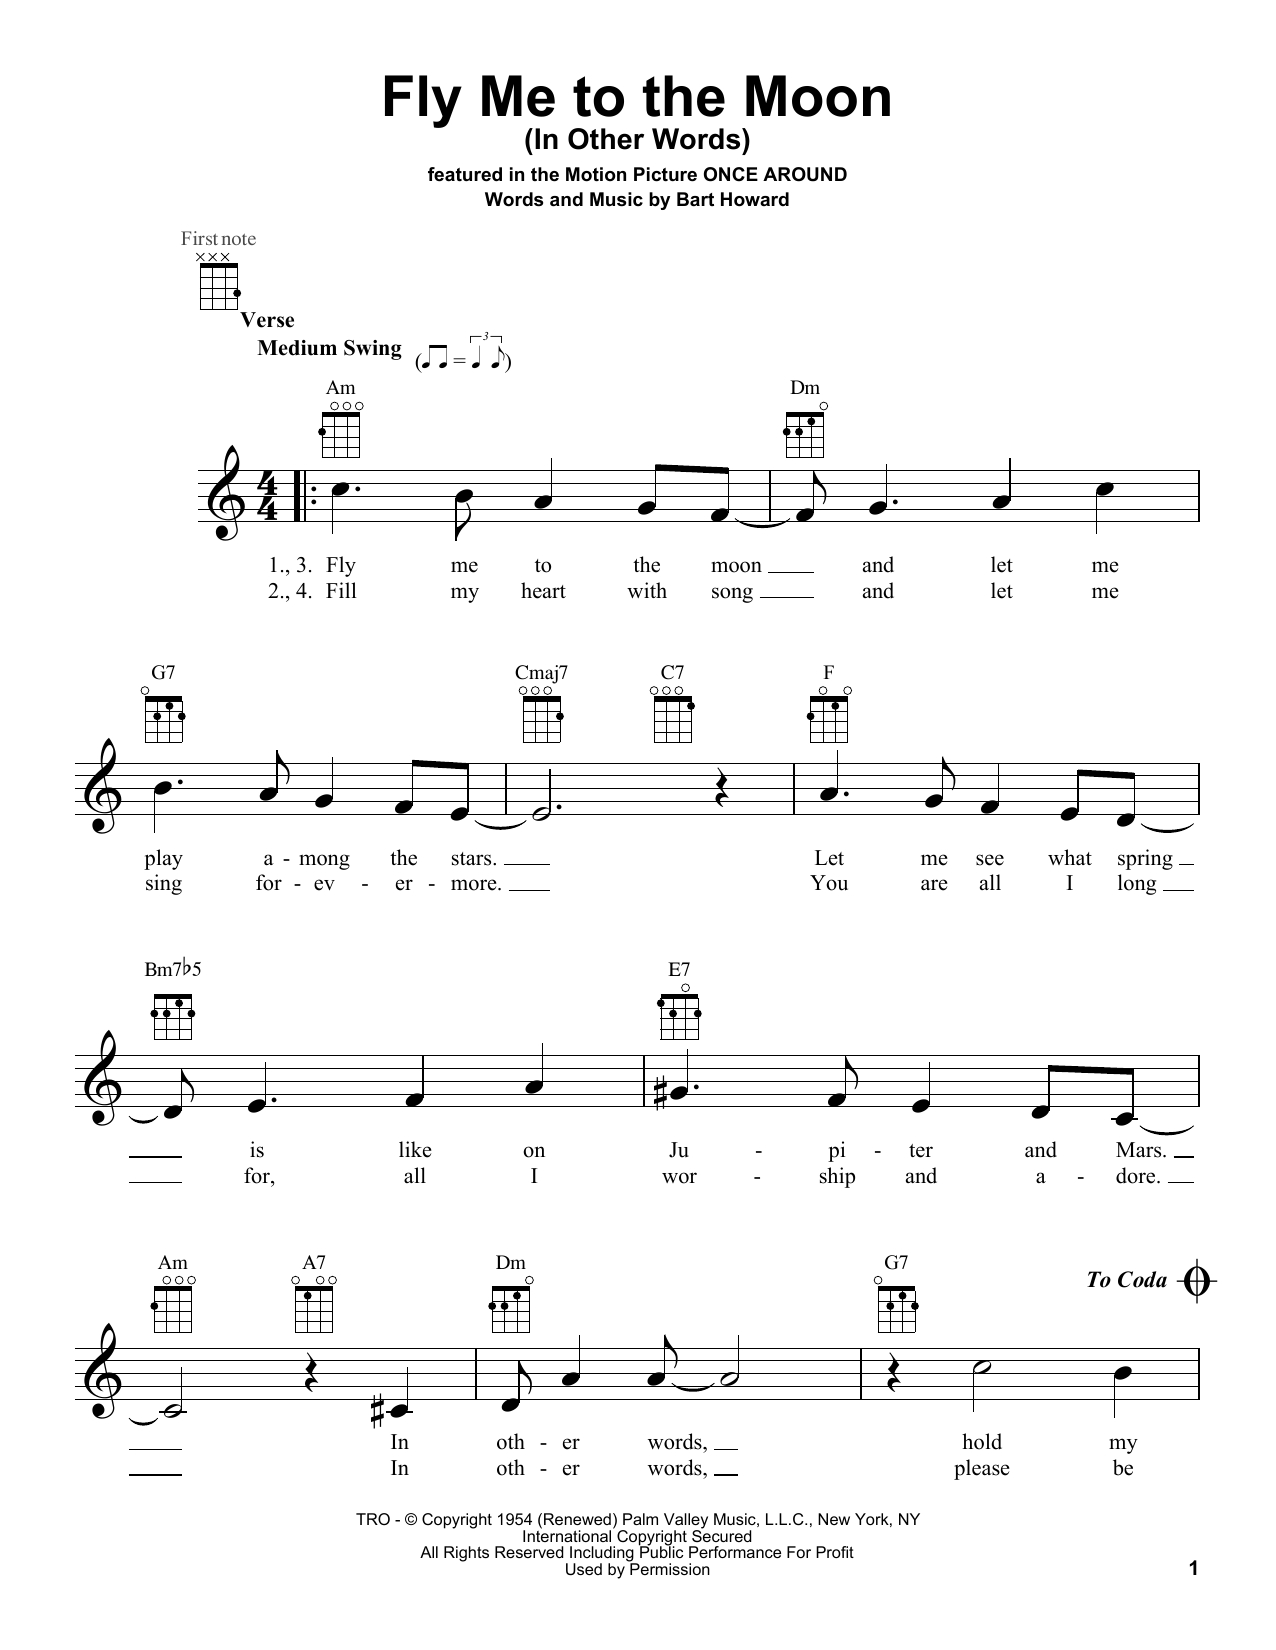 Fly Me To The Moon Chords Bob Darin Fly Me To The Moon In Other Words Sheet Music Notes Chords Download Printable Ukulele Sku 160205